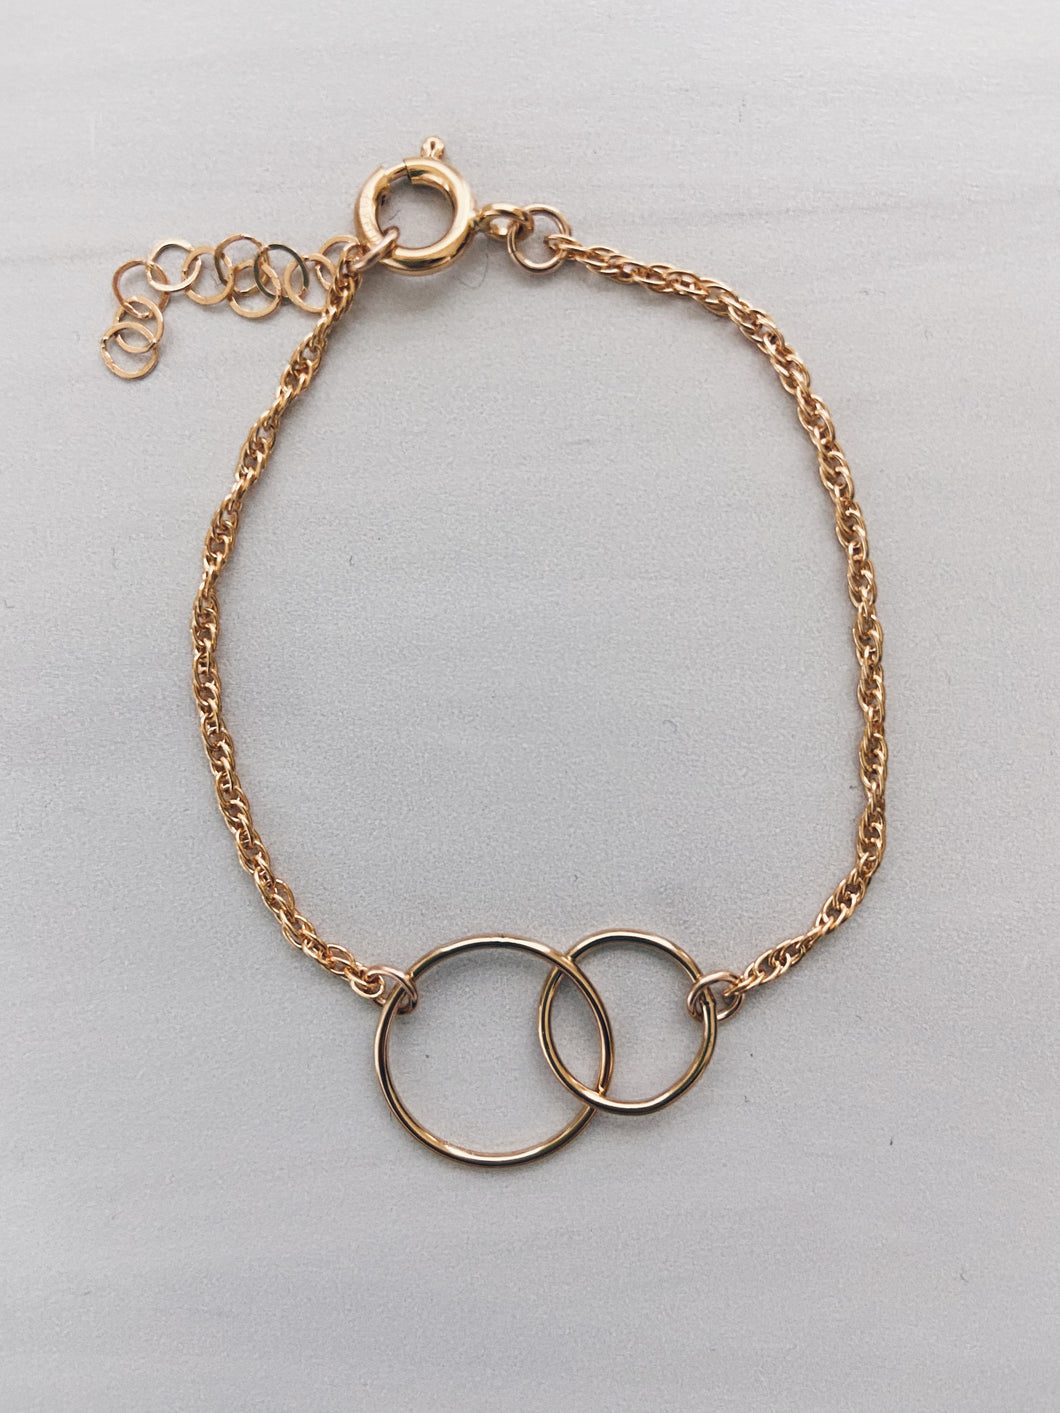 14k Gold Filled Connected Circles Bracelet